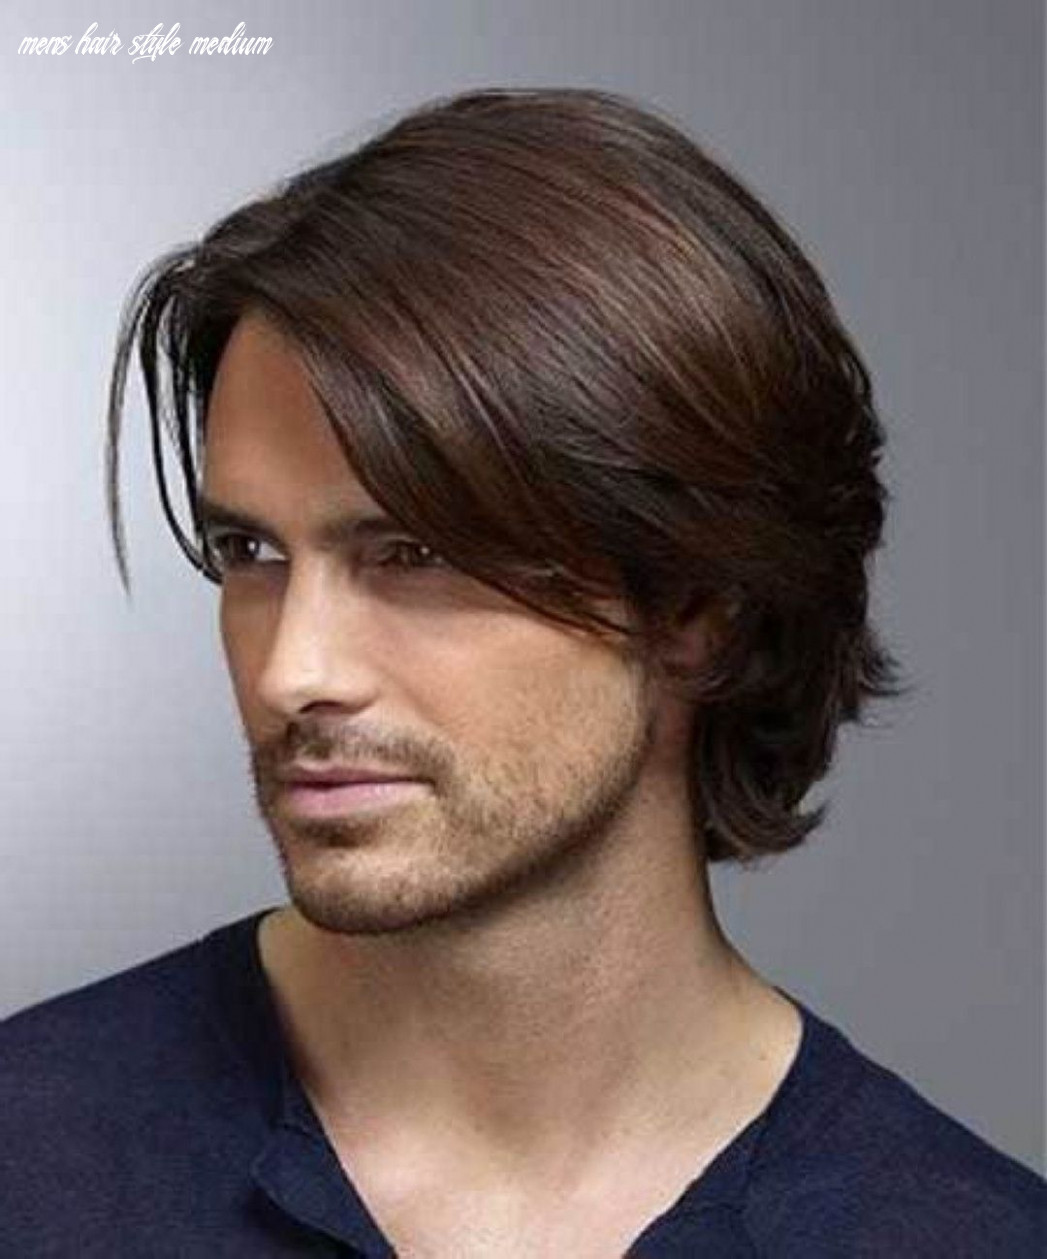 Hairstyle for medium length hair for men 9 images about men